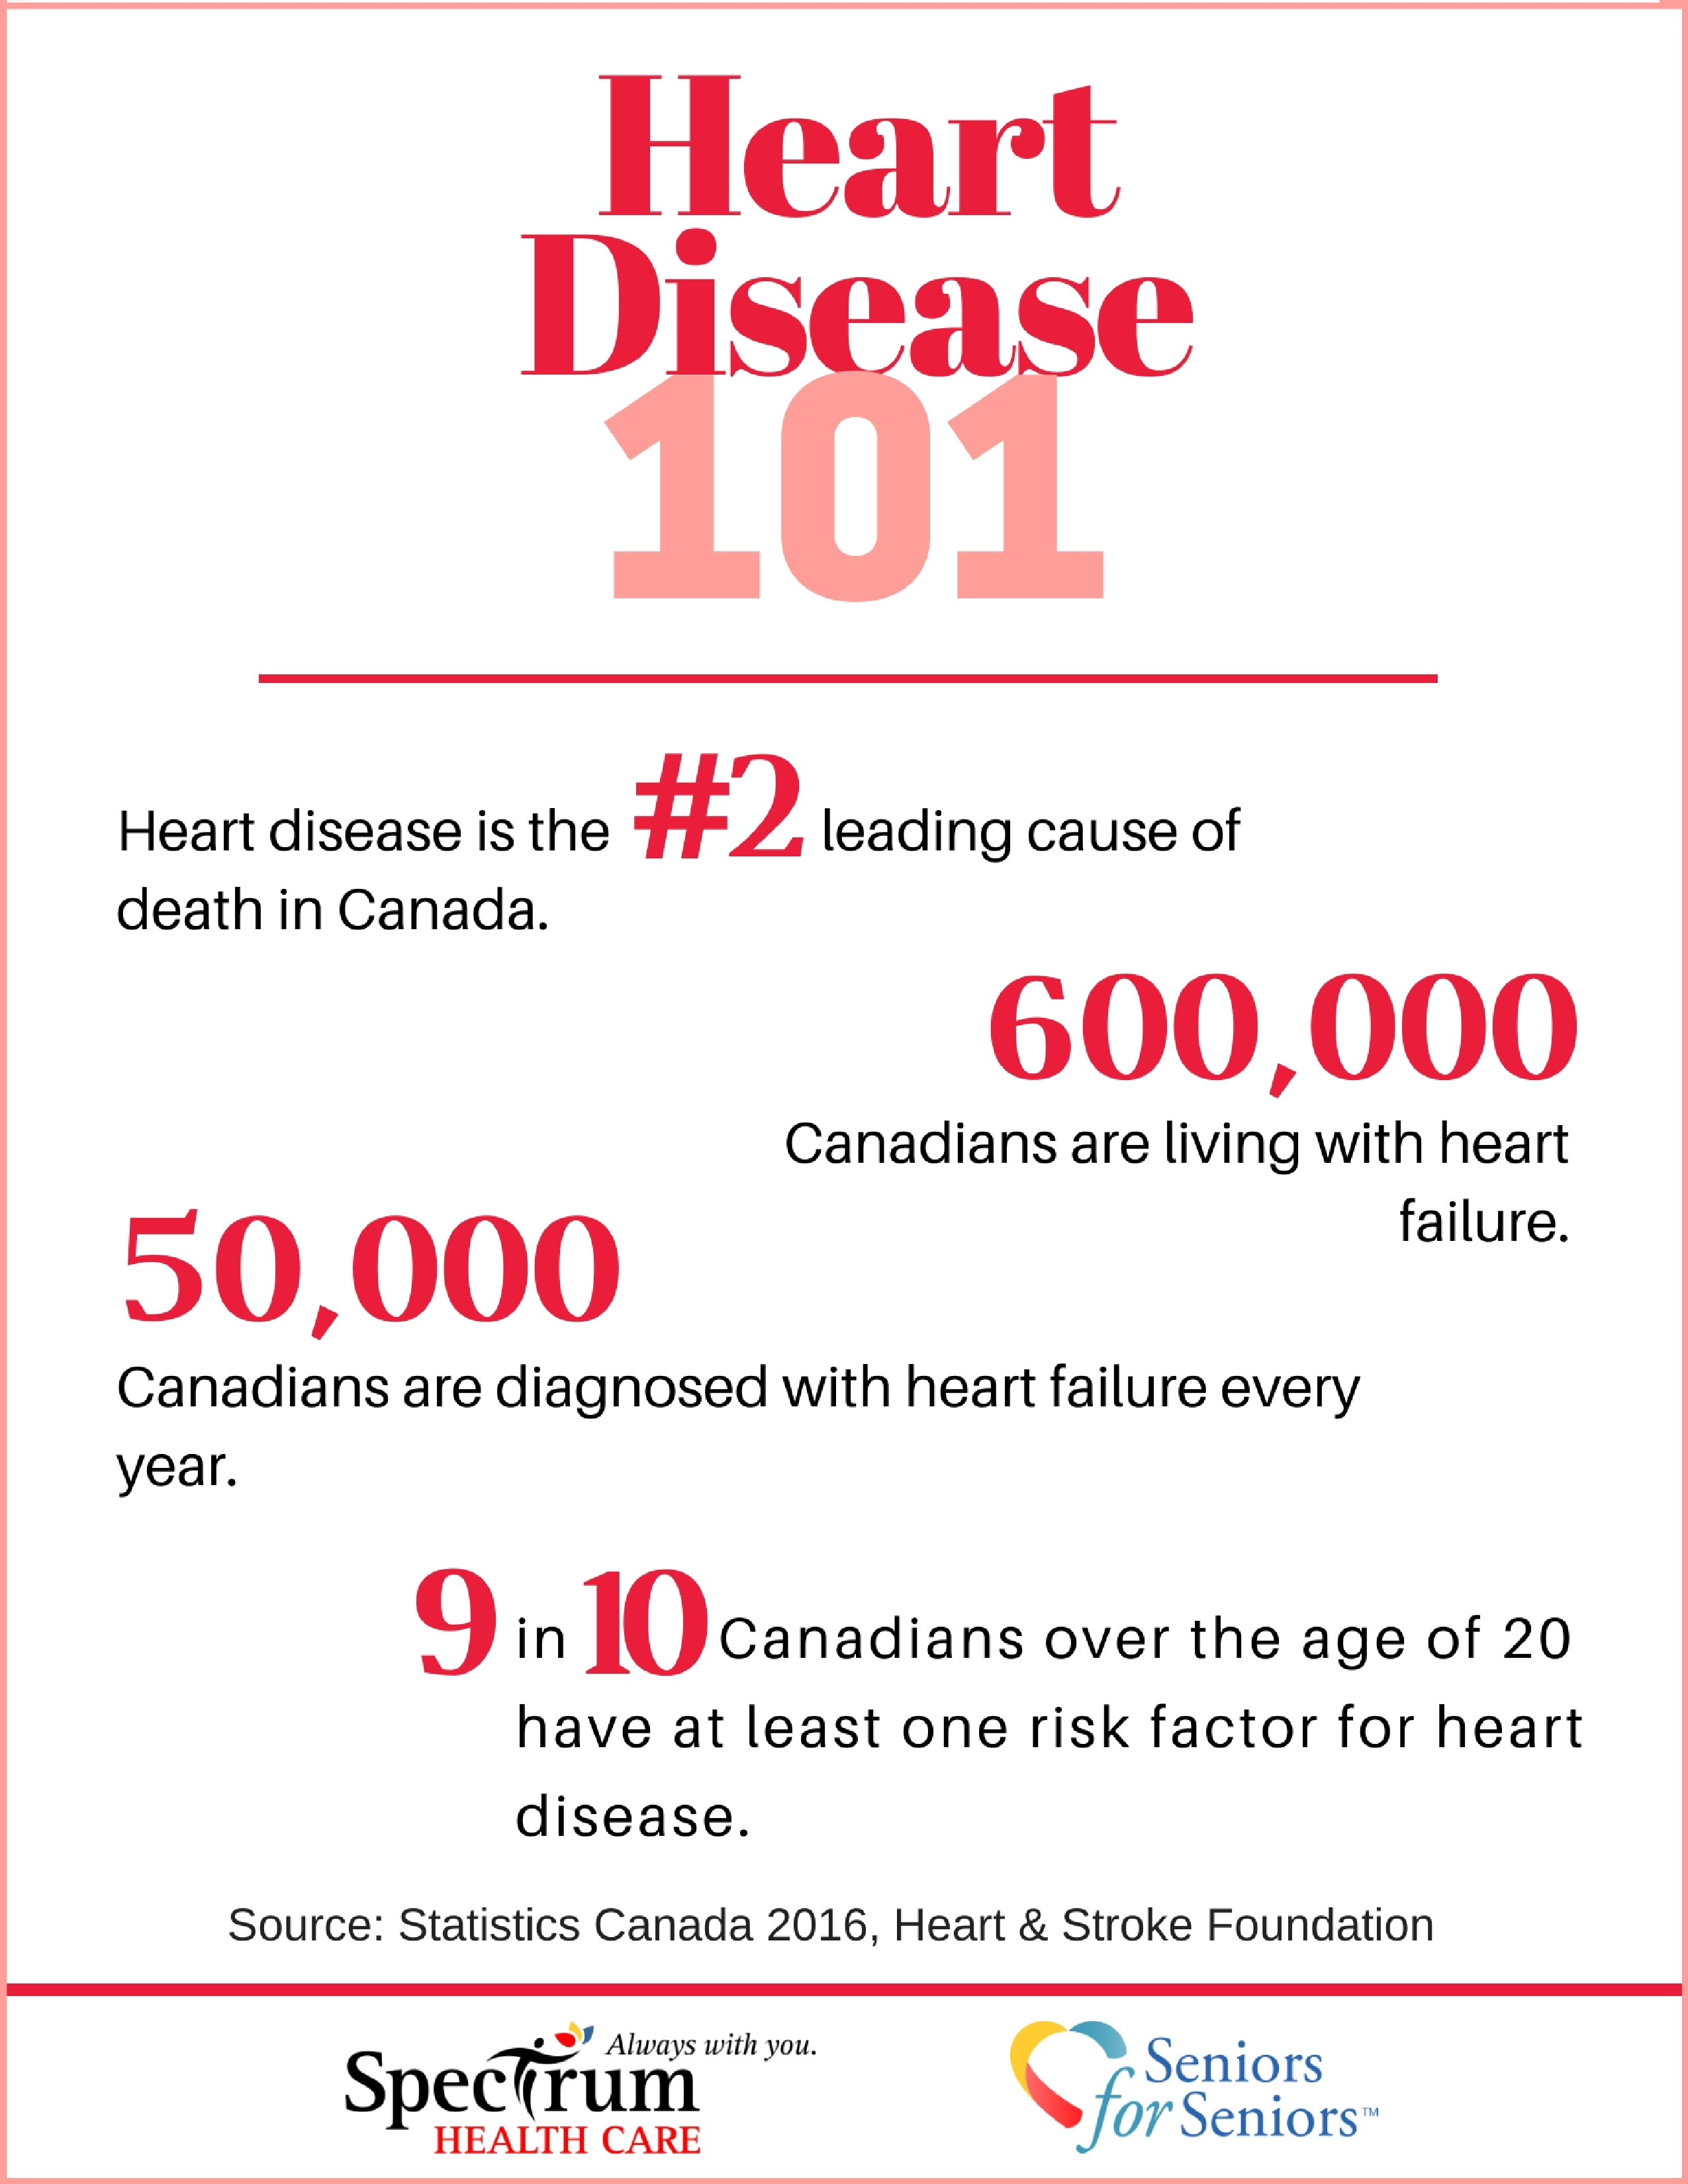 Image: Heart Disease 101: Know the facts